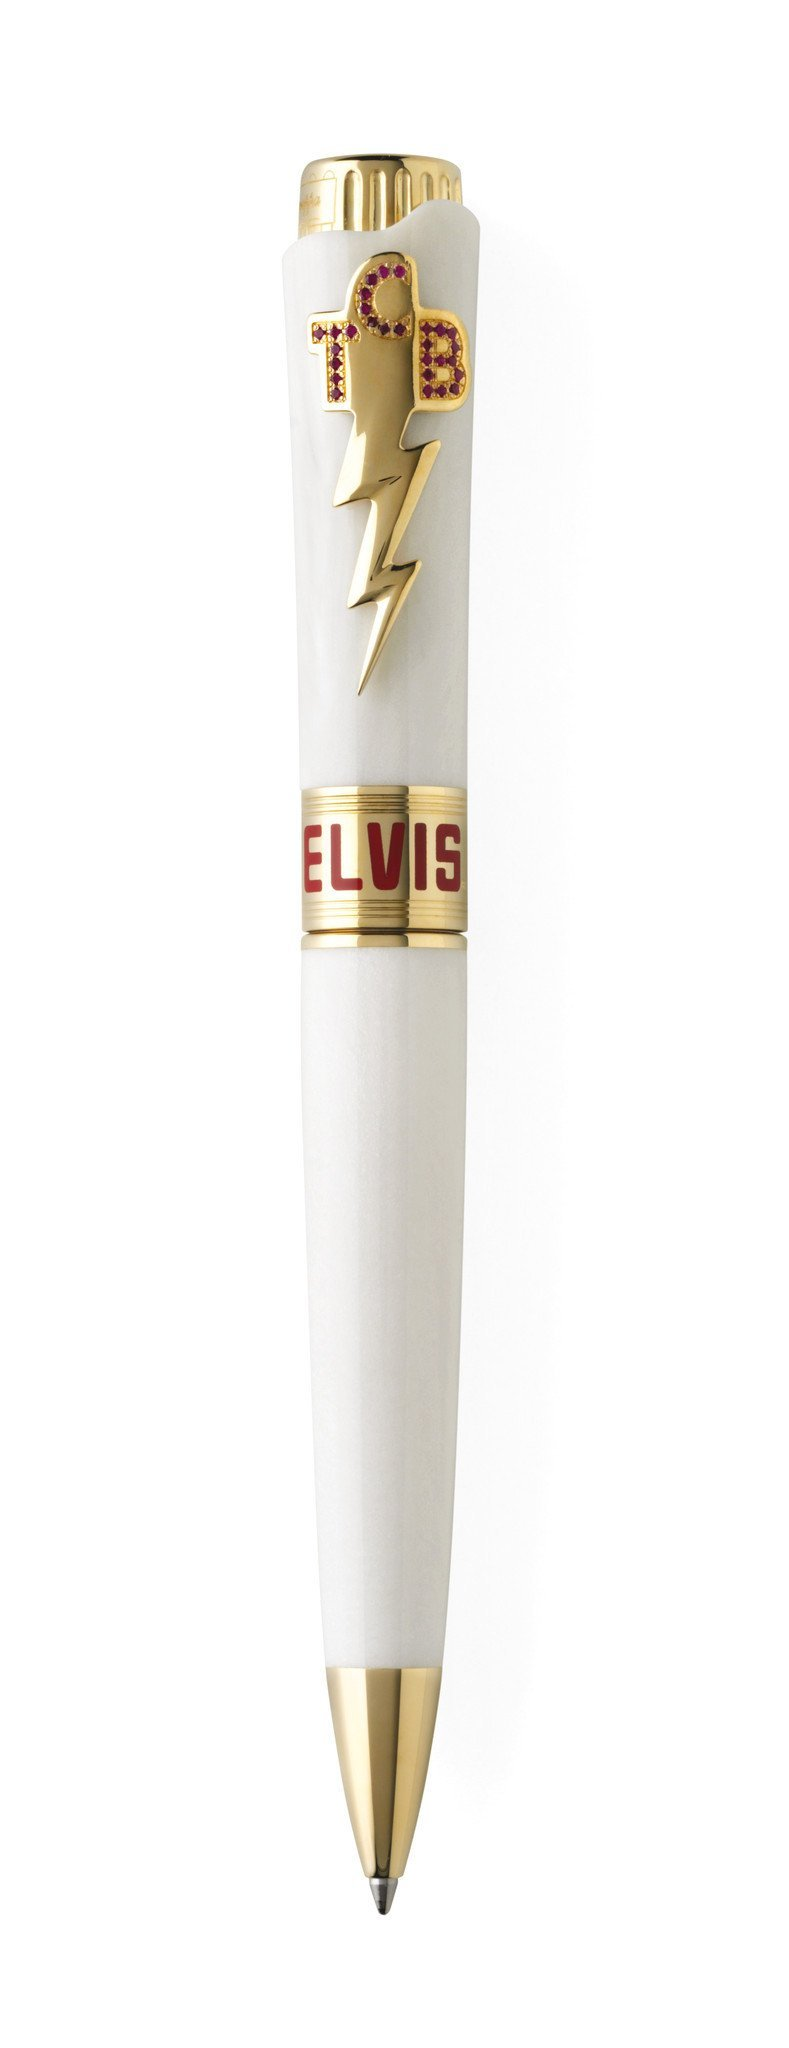 Montegrappa Pen Icons Elvis Presley Las Vegas Ballpoint Pen ISICEBYW - Watches & Crystals